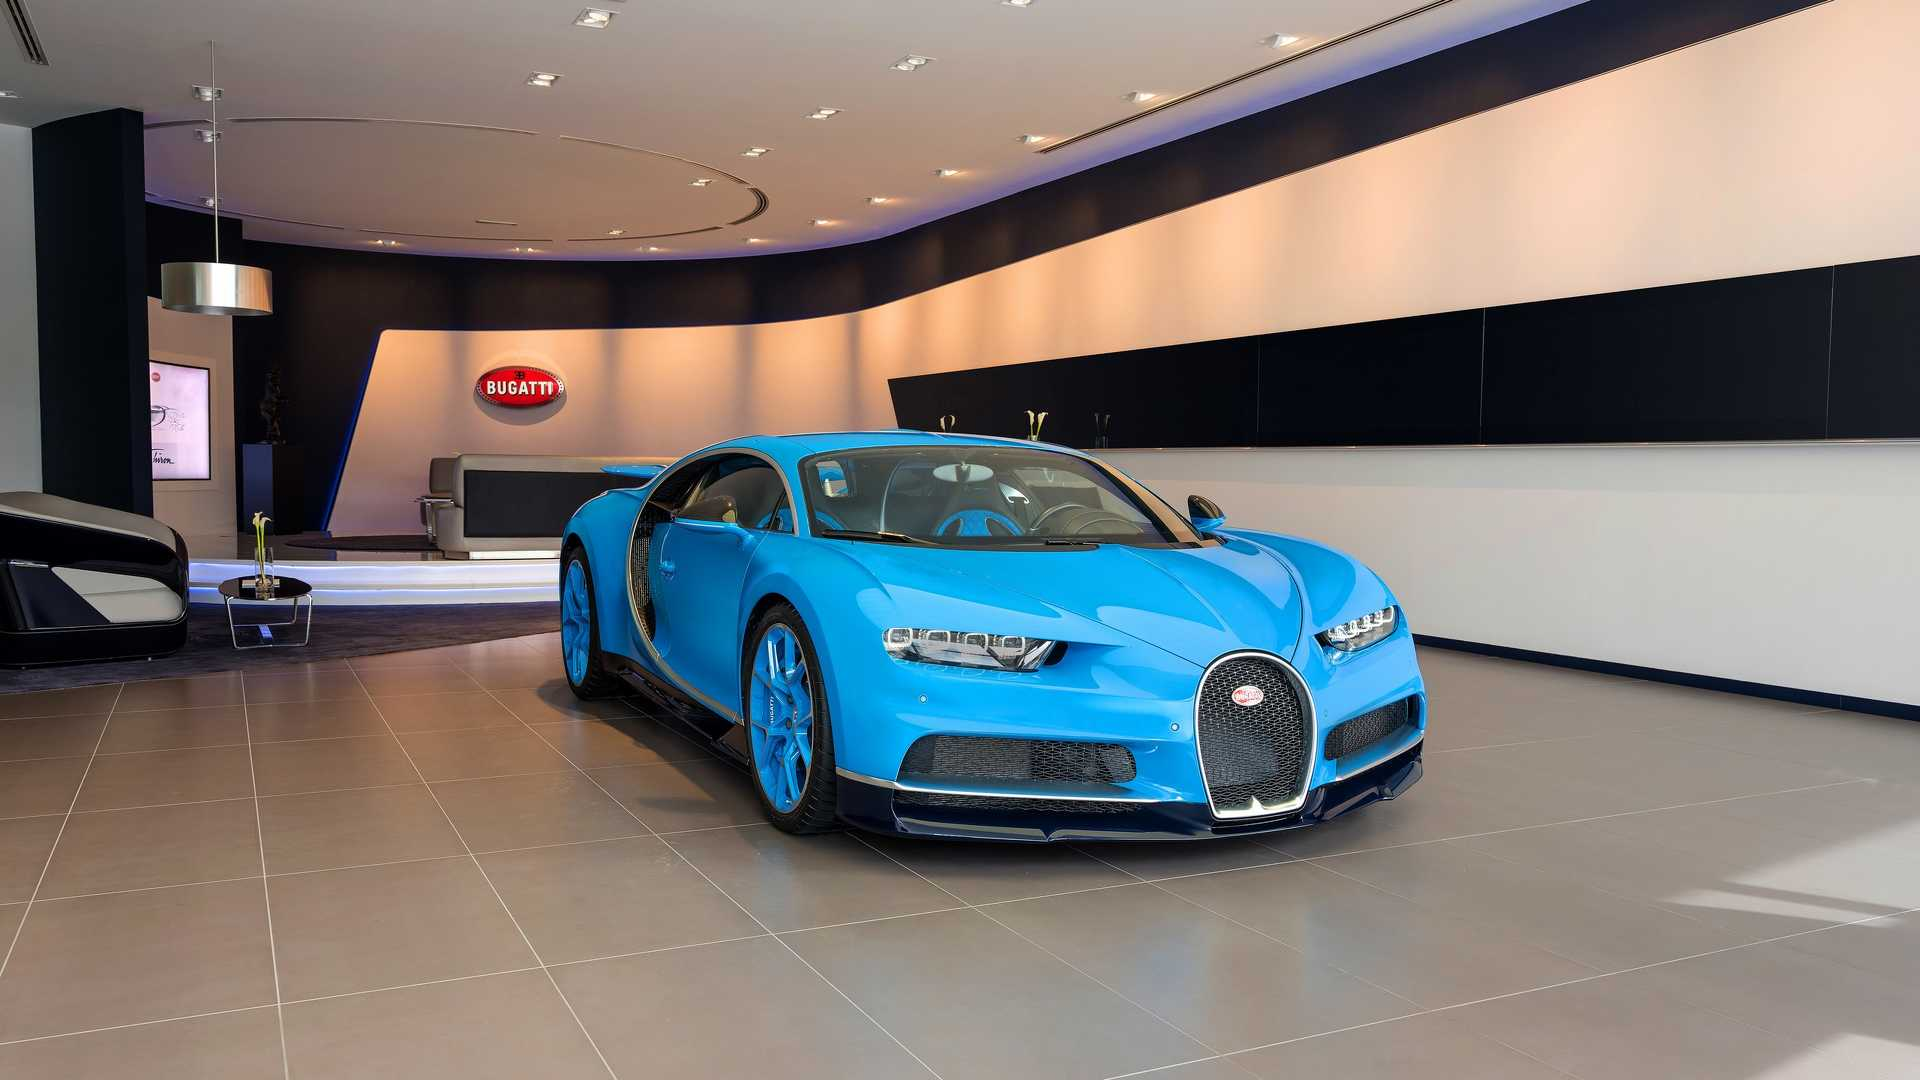 World's Largest Buggati Showroom Opens In Dubai